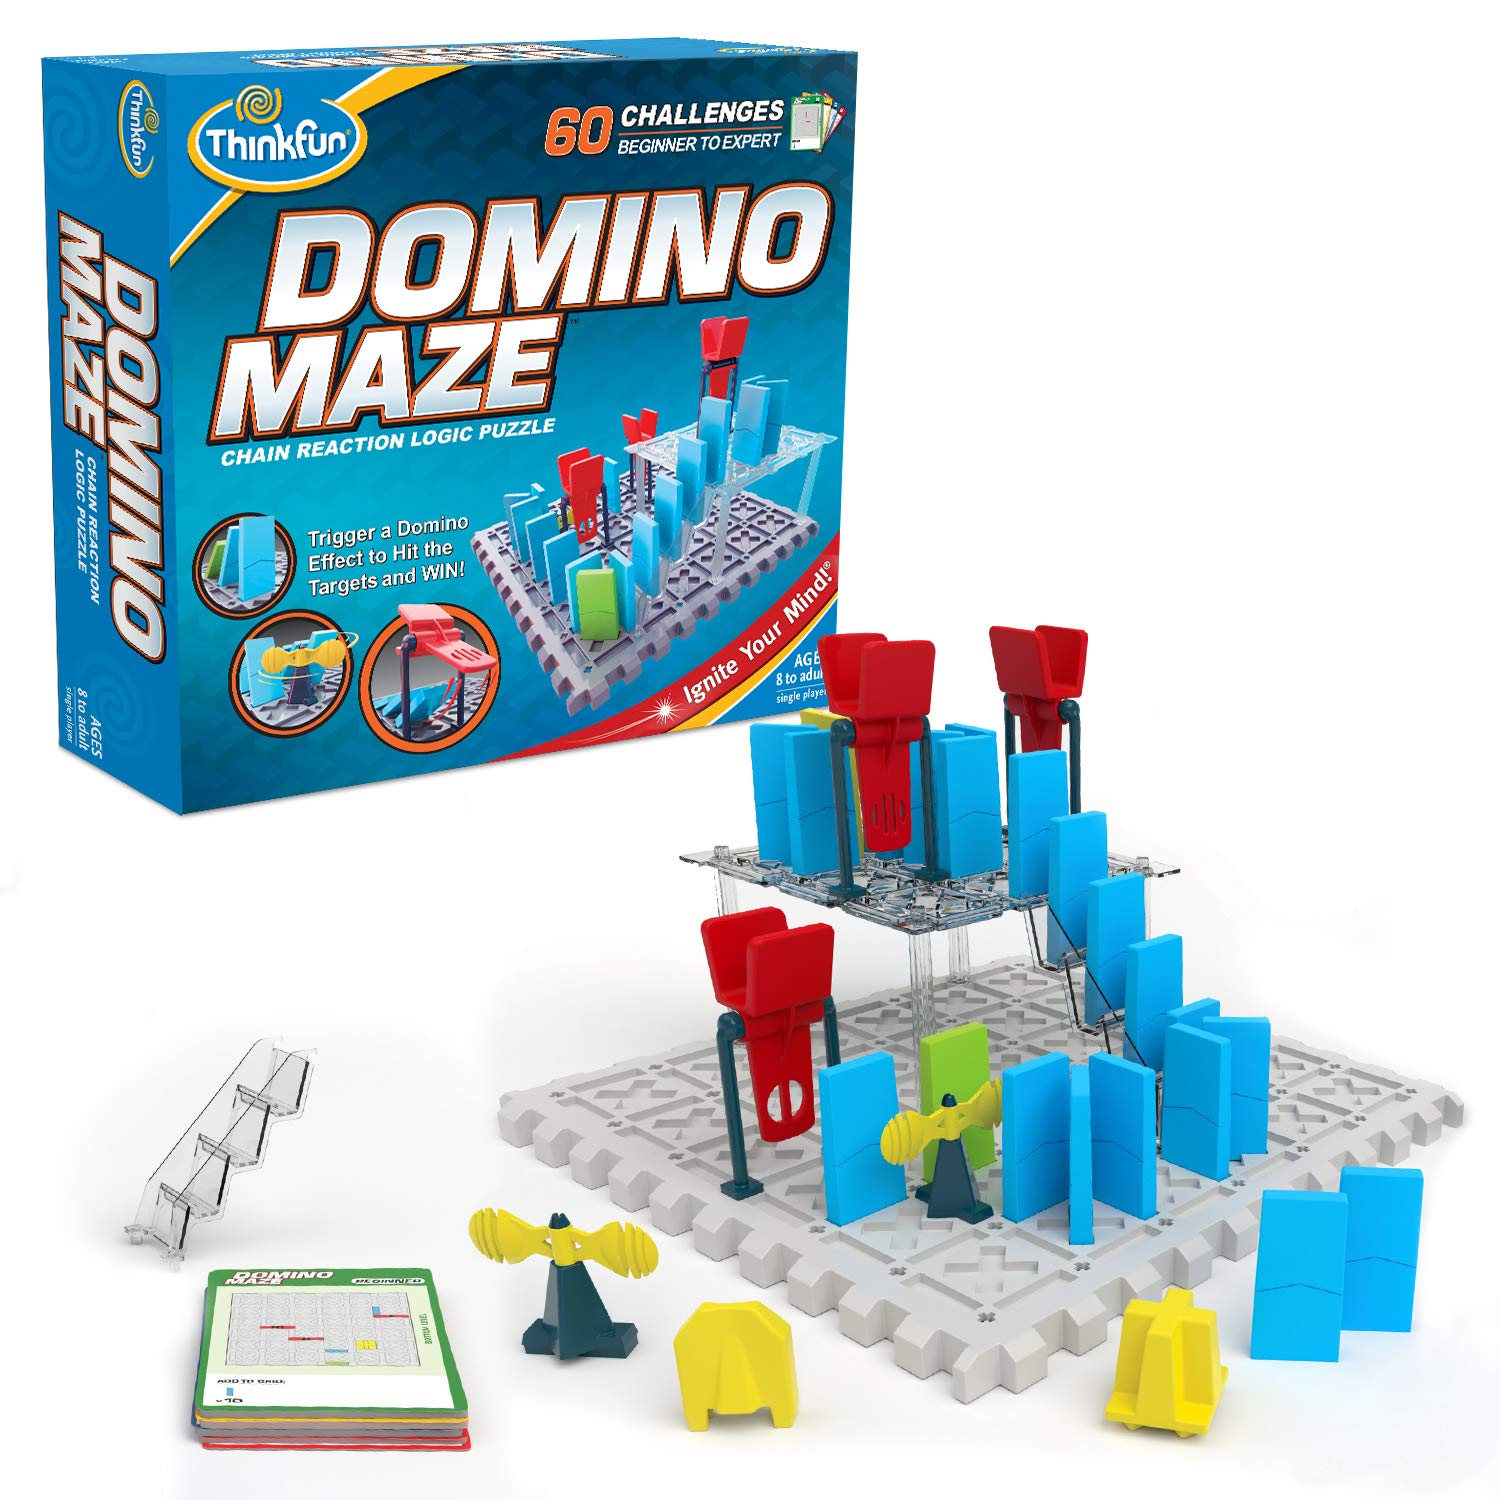 ThinkFun Domino Maze STEM Toy and Logic Game for Boys and Girls Age 8 and Up - Combines The Fun of Dominos with The Challenge of a Puzzle by Think Fun